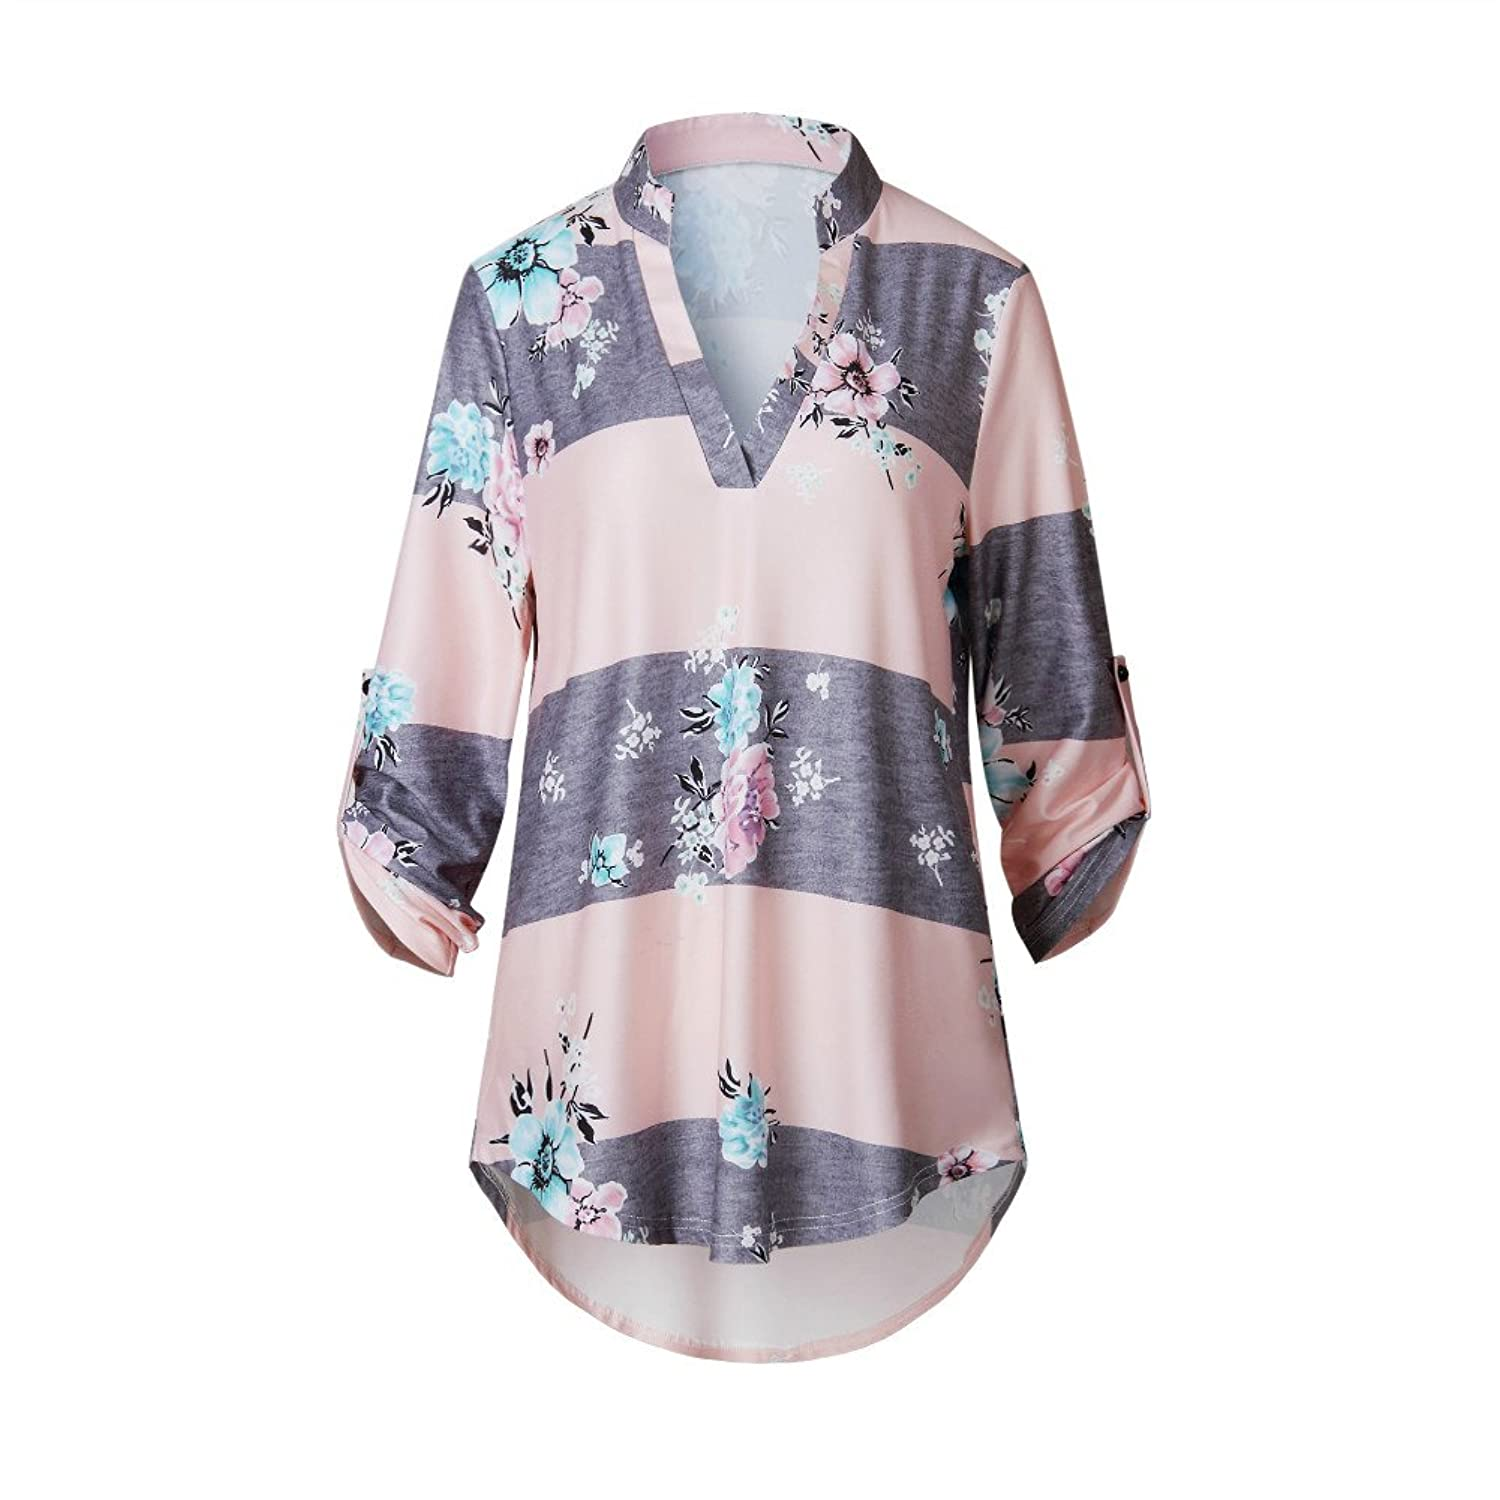 LiMiCao Womens Casual V Neck 3 4 Sleeve Floral Print Blouses And Tops T Shirts